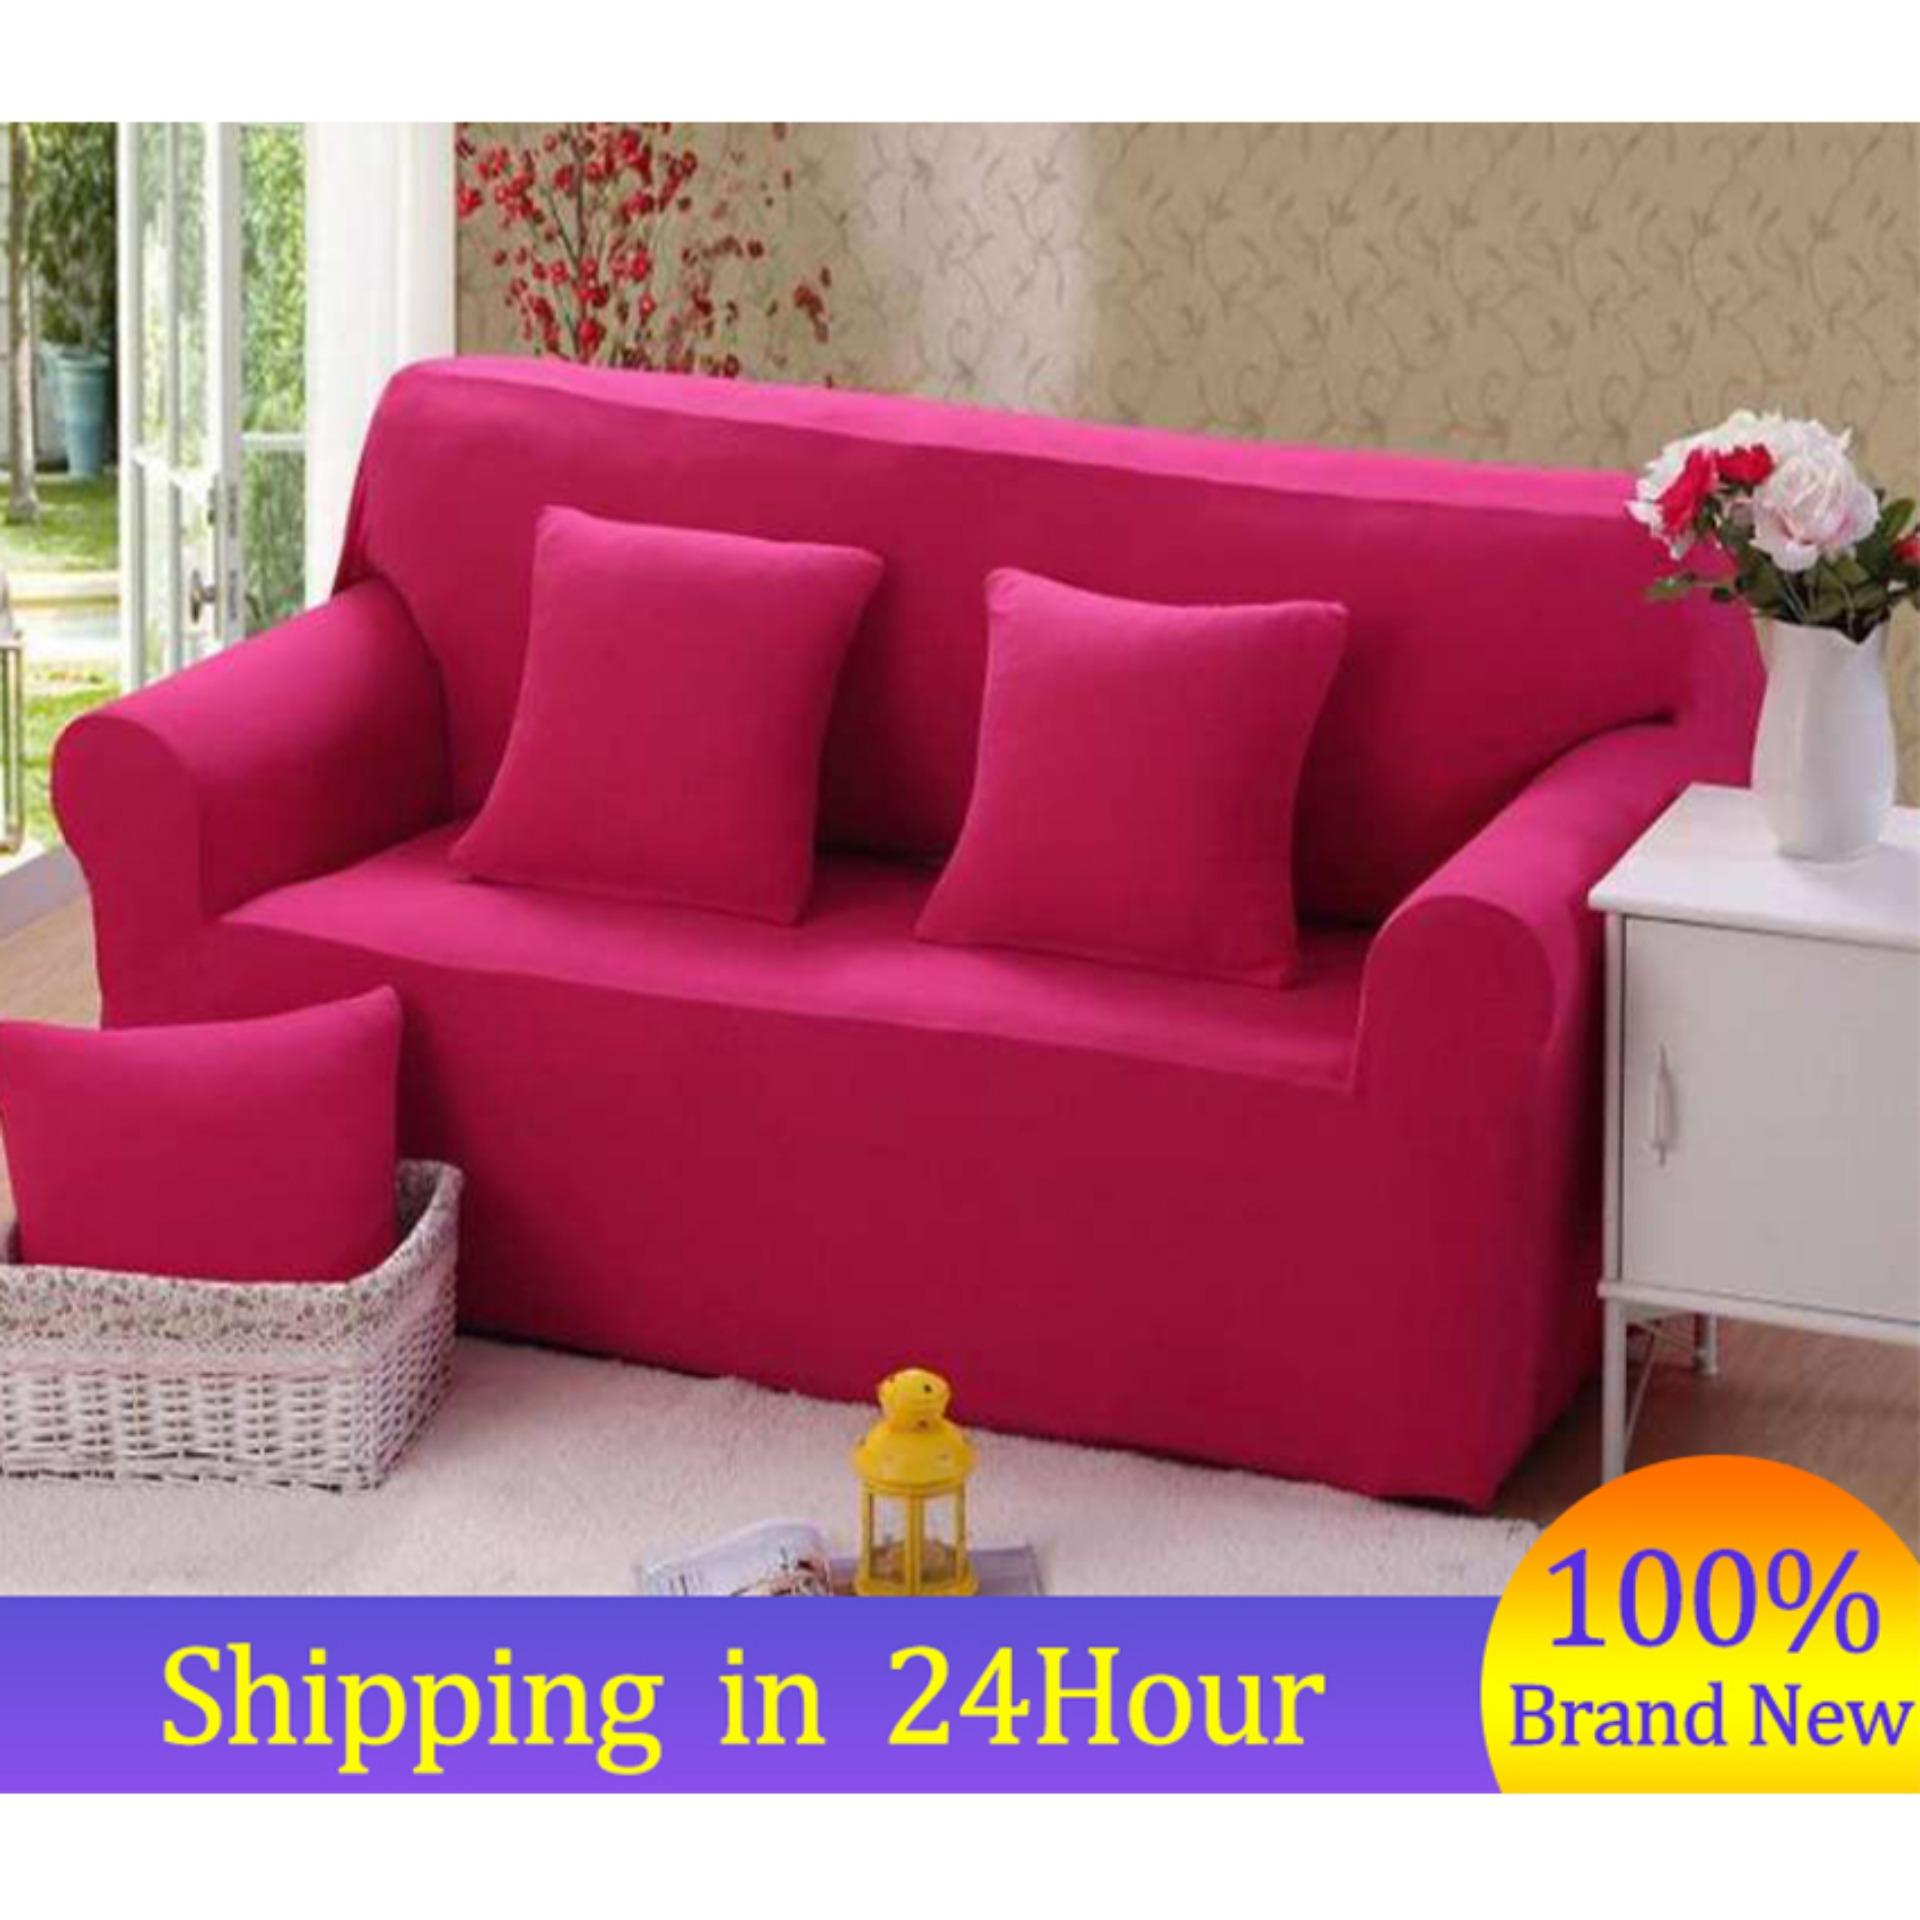 Living Rooms On Sale: Living Room Furniture Prices